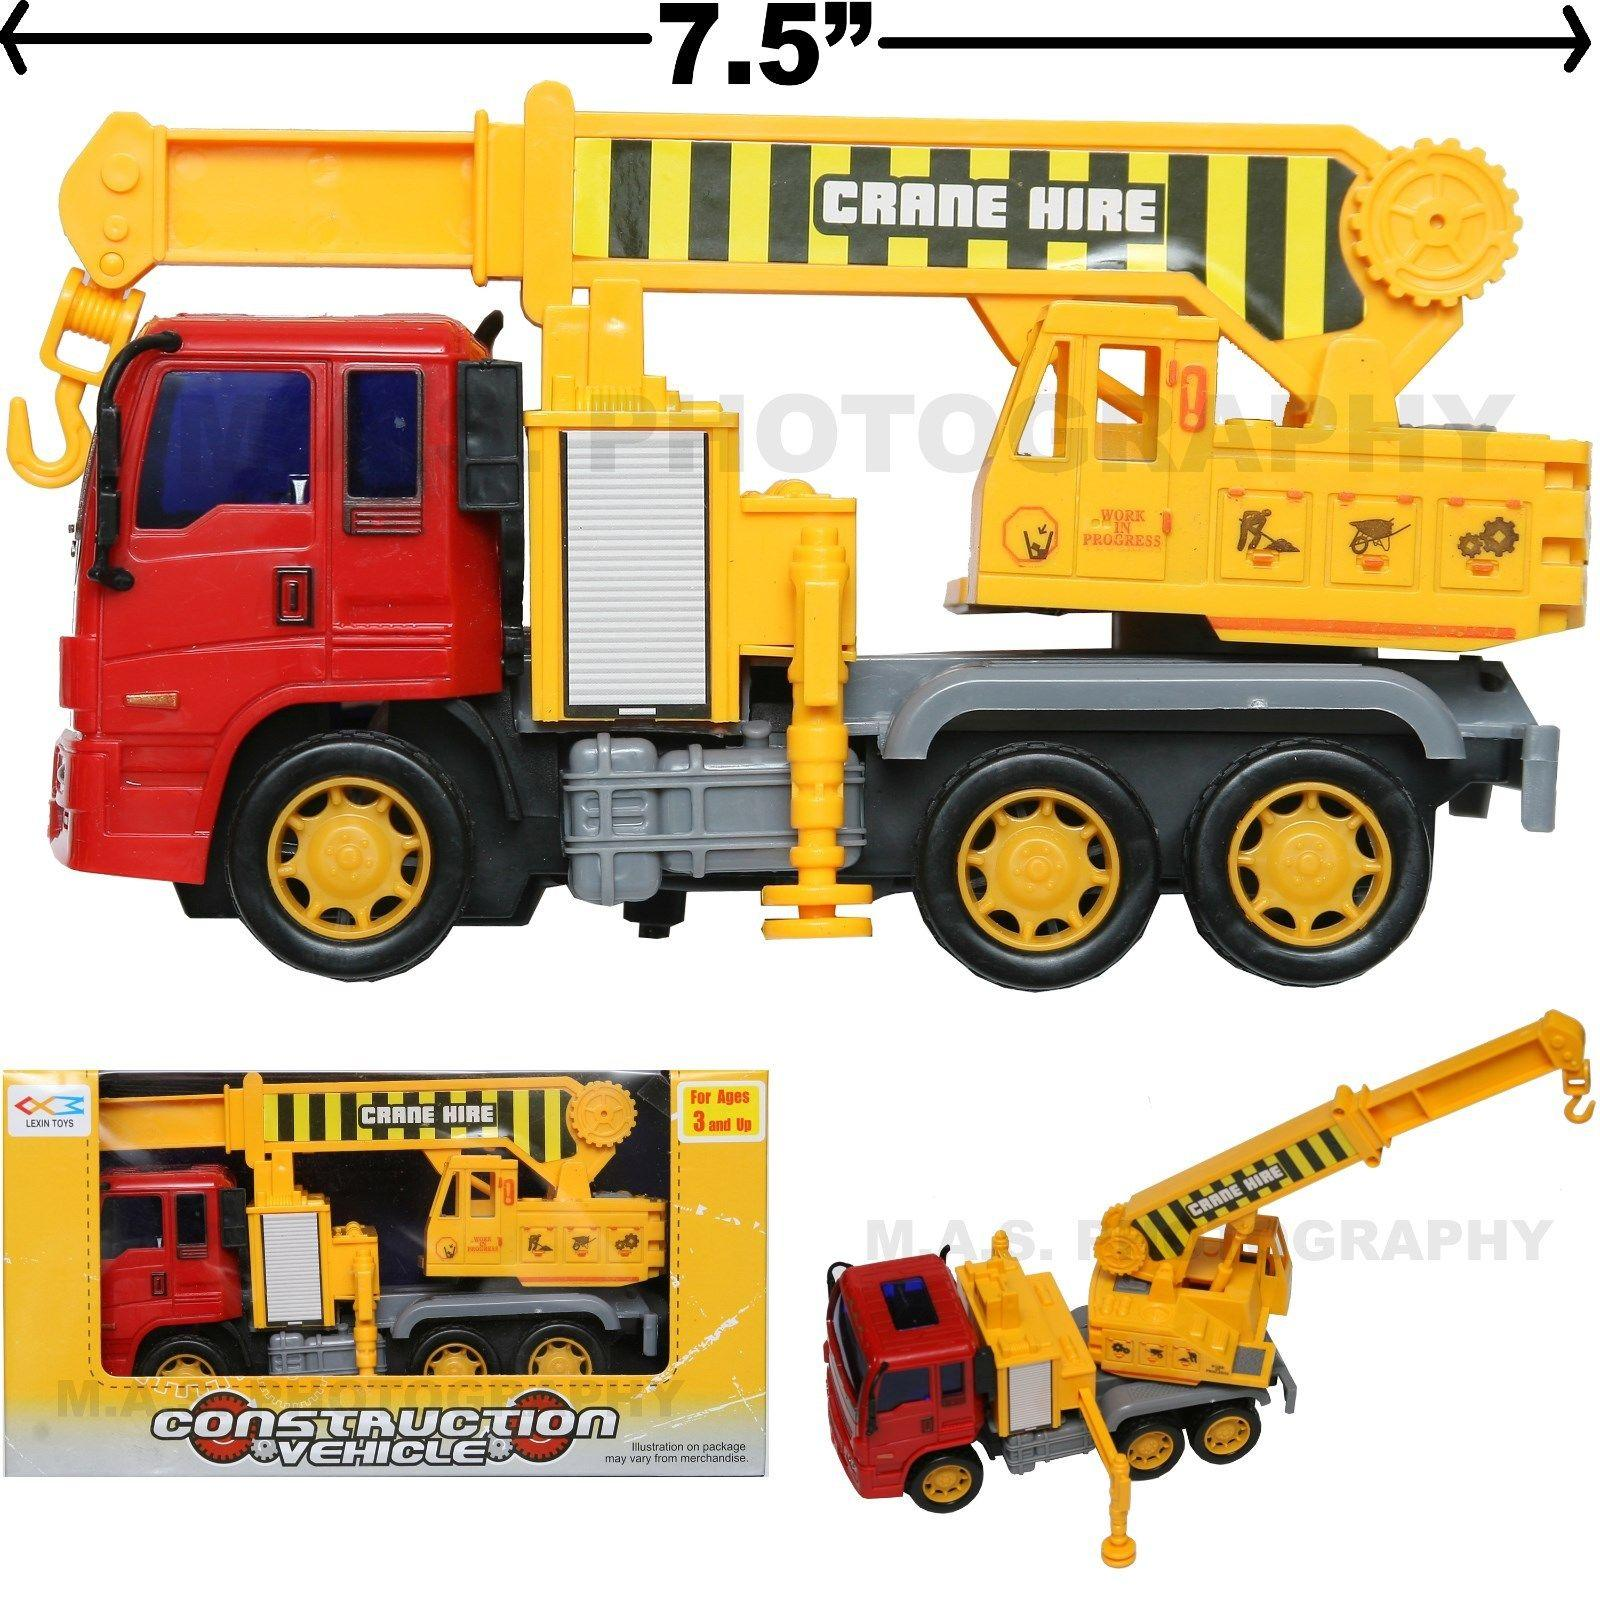 2018 Crane Hire Truck Toy Construction Vehicle Friction Powered